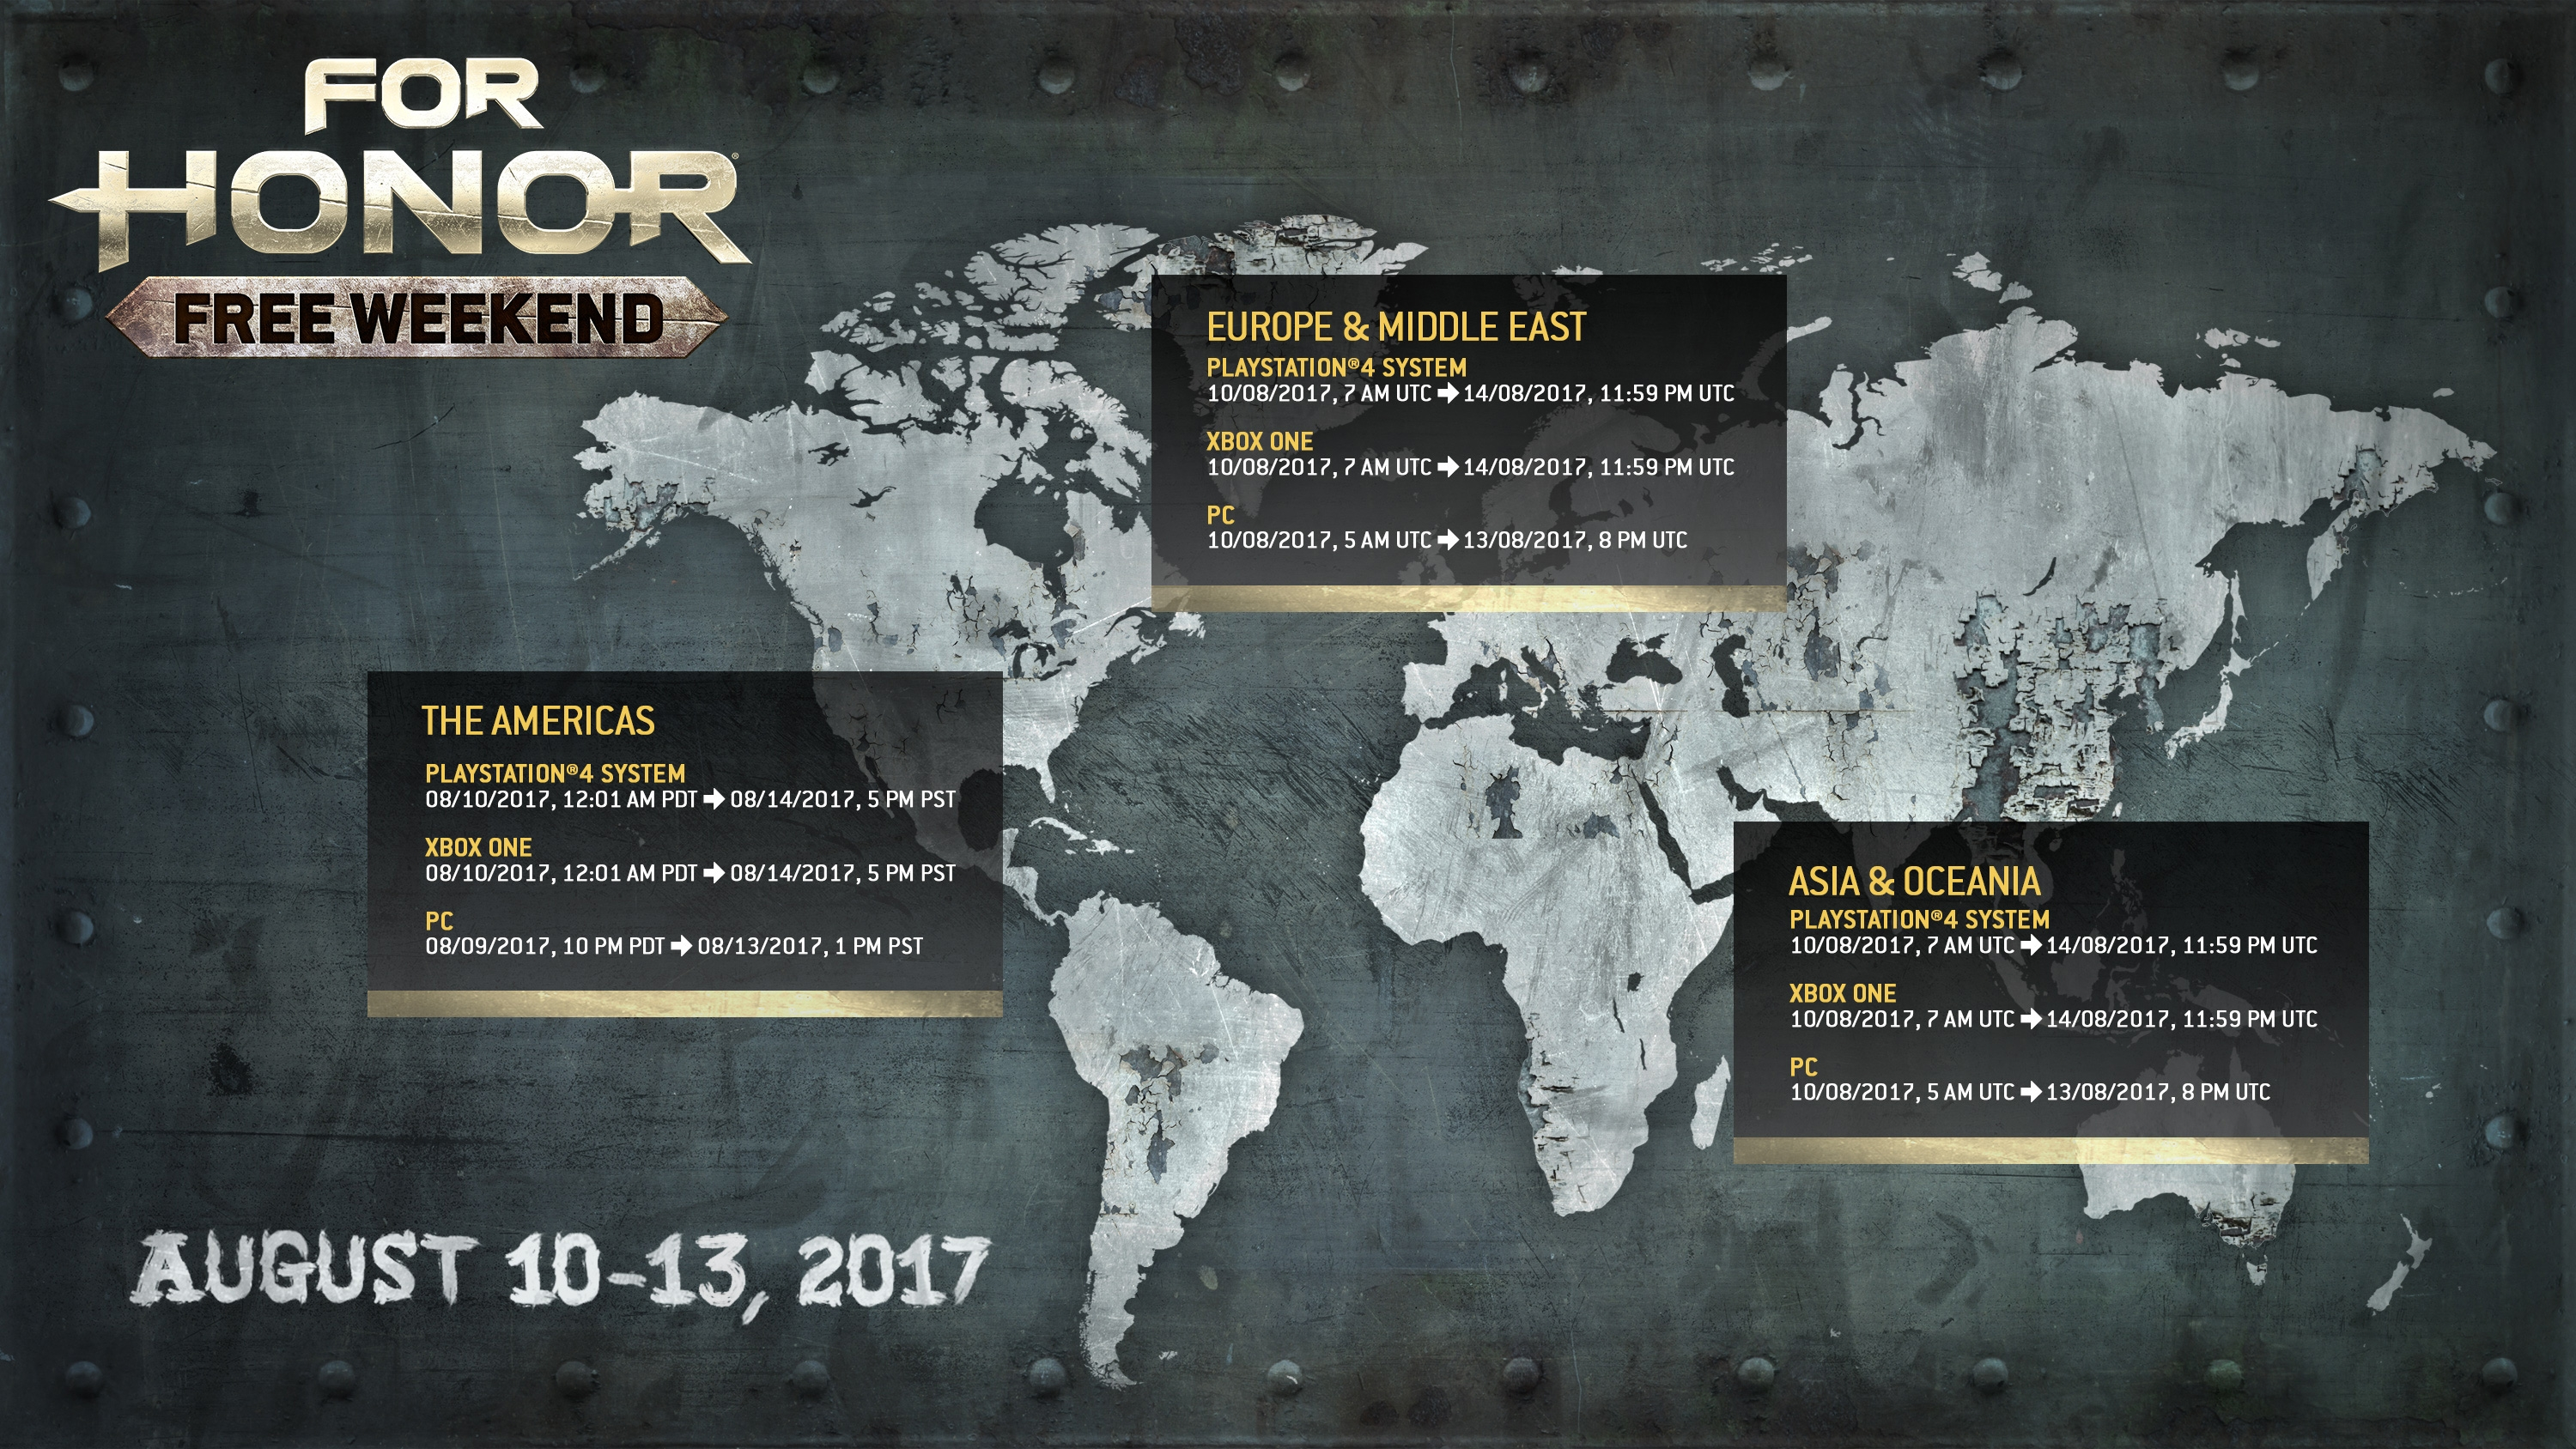 For Honor Free Weekend Runs August 10 – 13, Includes All Platforms | DeviceDaily.com